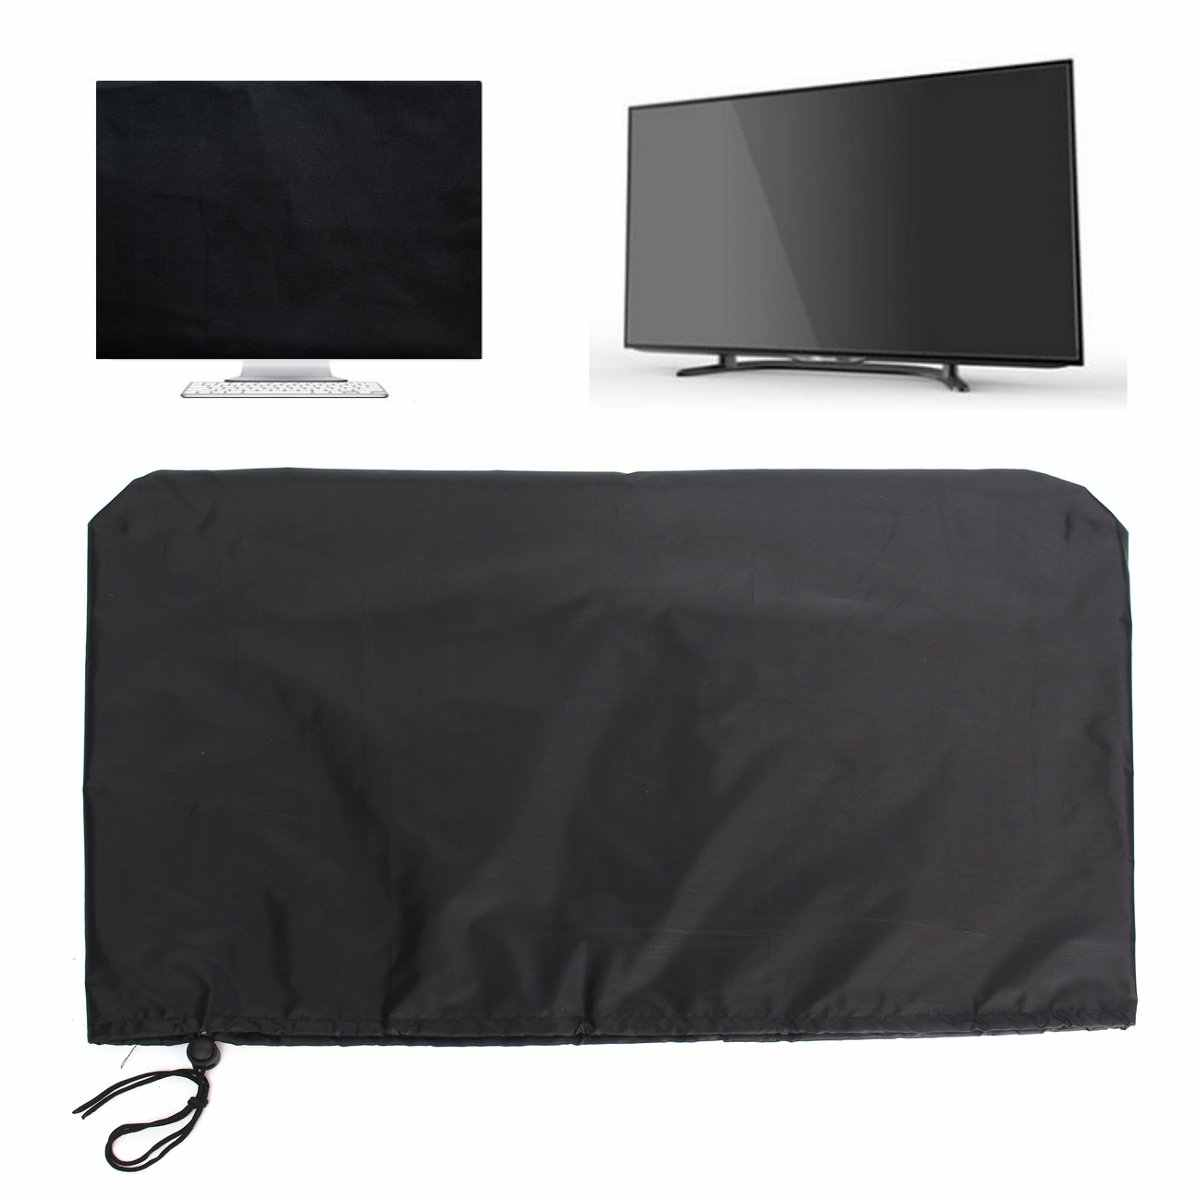 New 24 Inch Computers Flat Screen Monitor Dust Cover PC TV Fits Tablets Protectors Polyester Computer Covers Soft Lining 2 Color